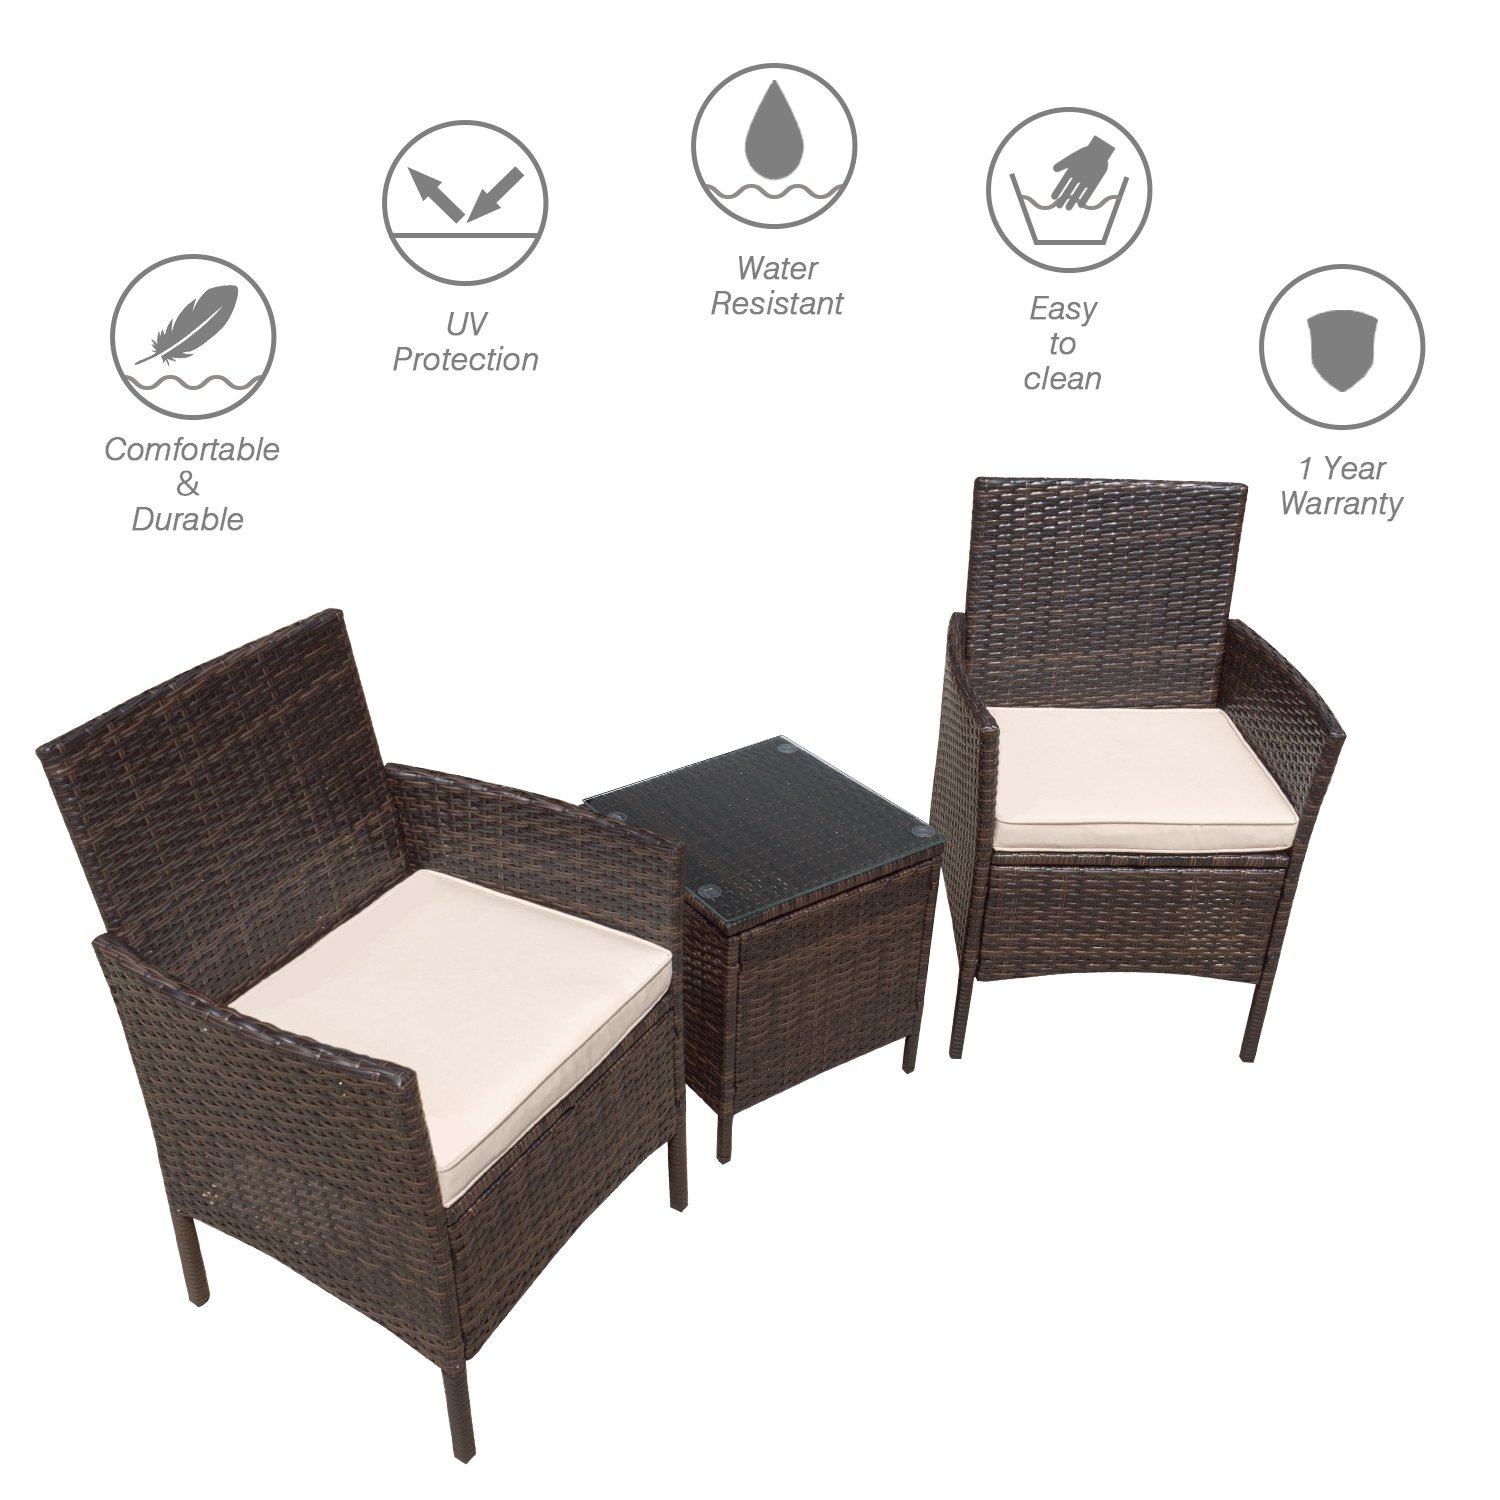 Flamaker 3 Pieces Patio Furniture Set Modern Outdoor Furniture Sets Clearance Cushioned PE Wicker Bistro Set Rattan Chair Conversation Sets with Coffee Table (Brown Wicker) by Flamaker (Image #2)